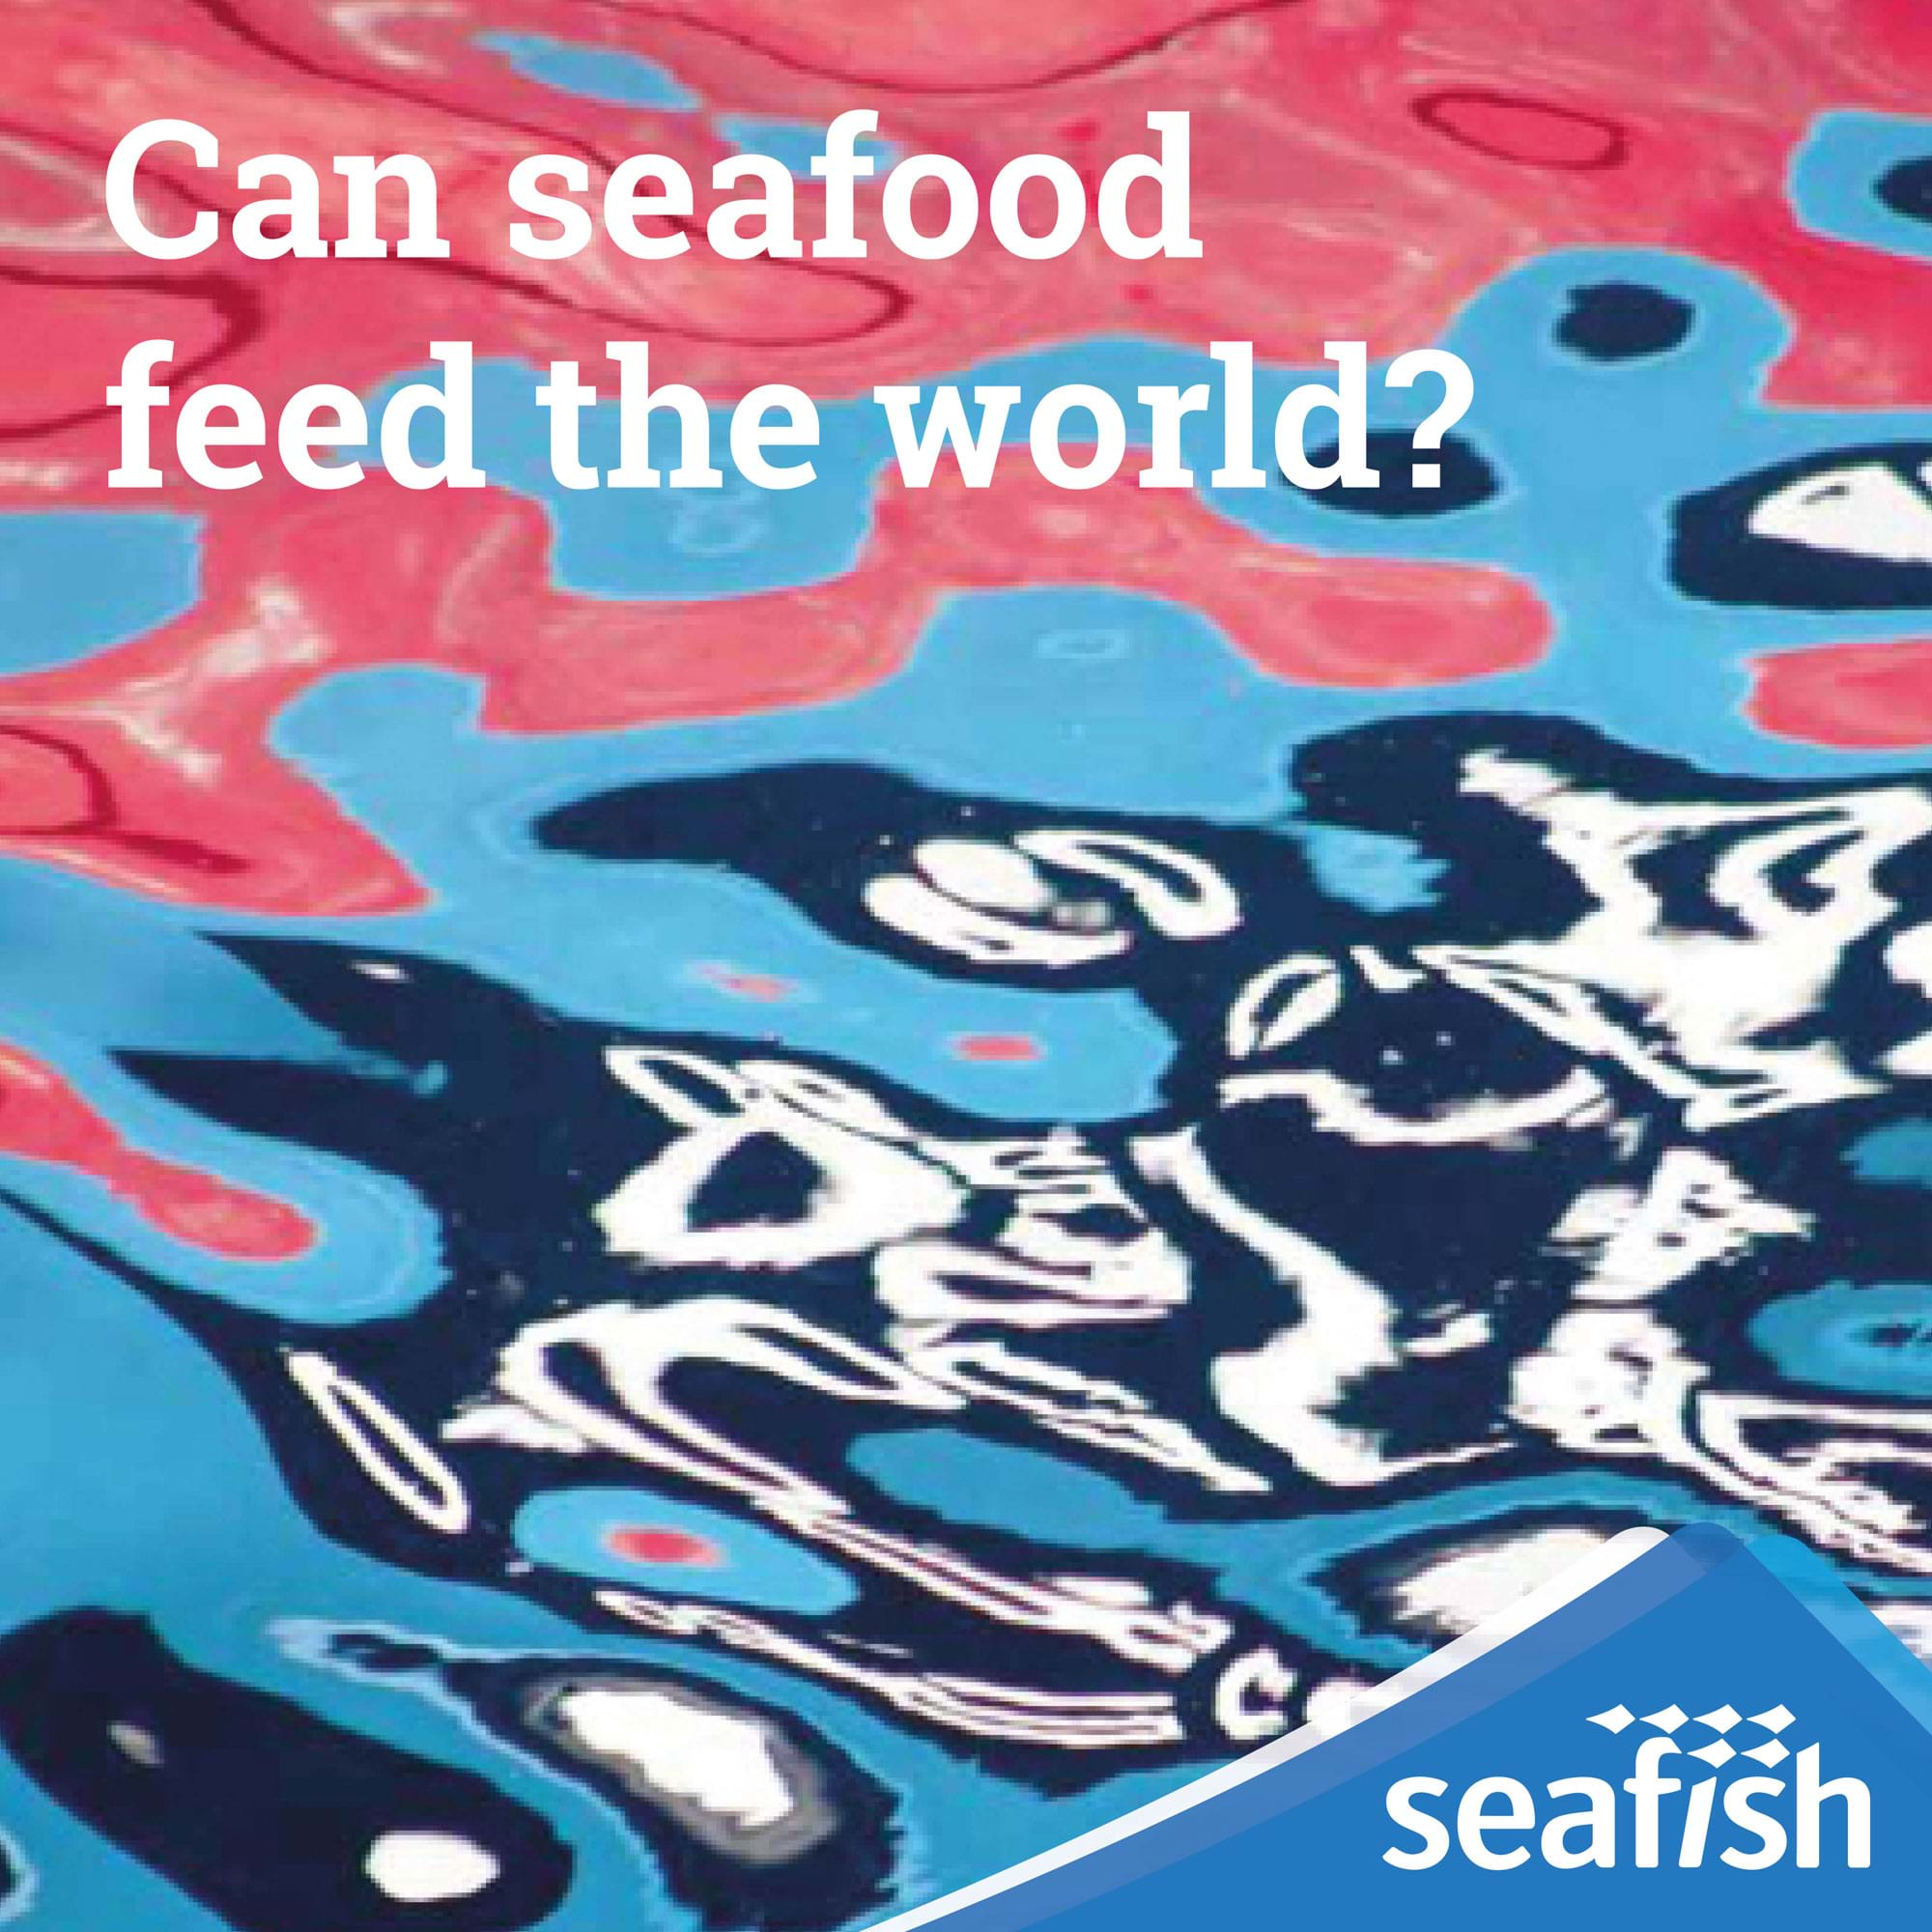 Can seafood feed the world podcast image